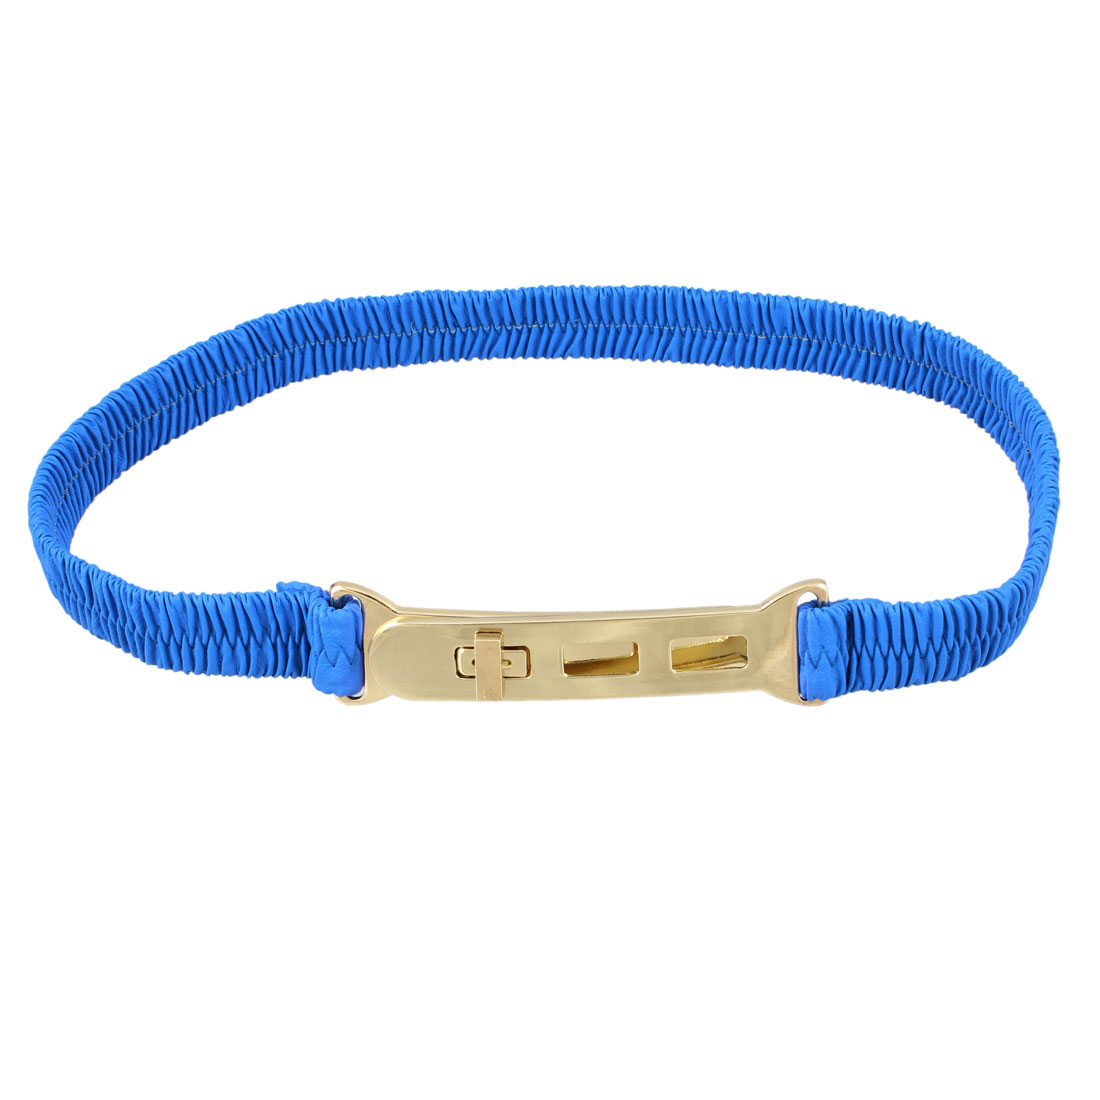 Metal Turn Lock Buckle Blue Elastic Waist Cinch Belt for Lady